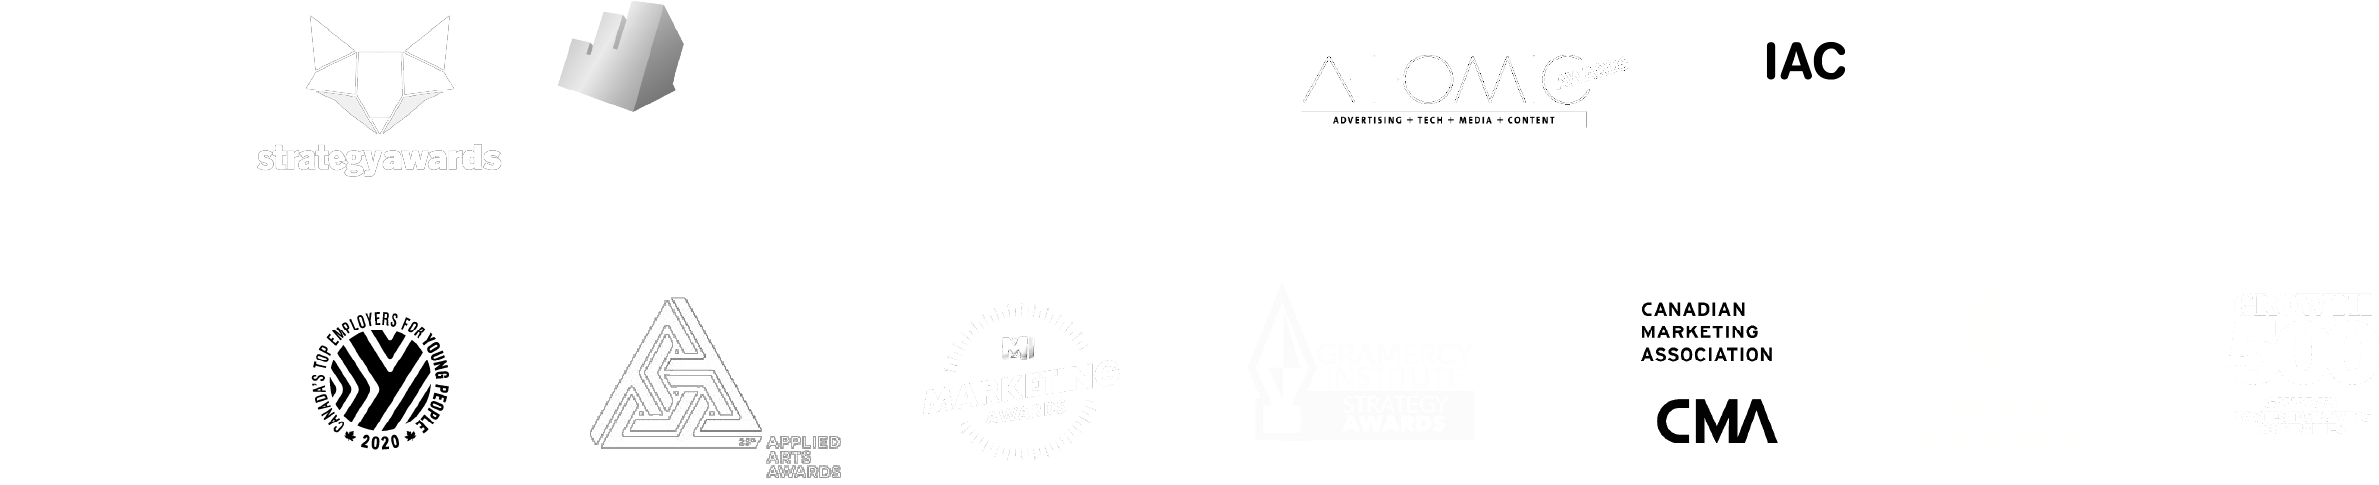 Logos of G&G awards